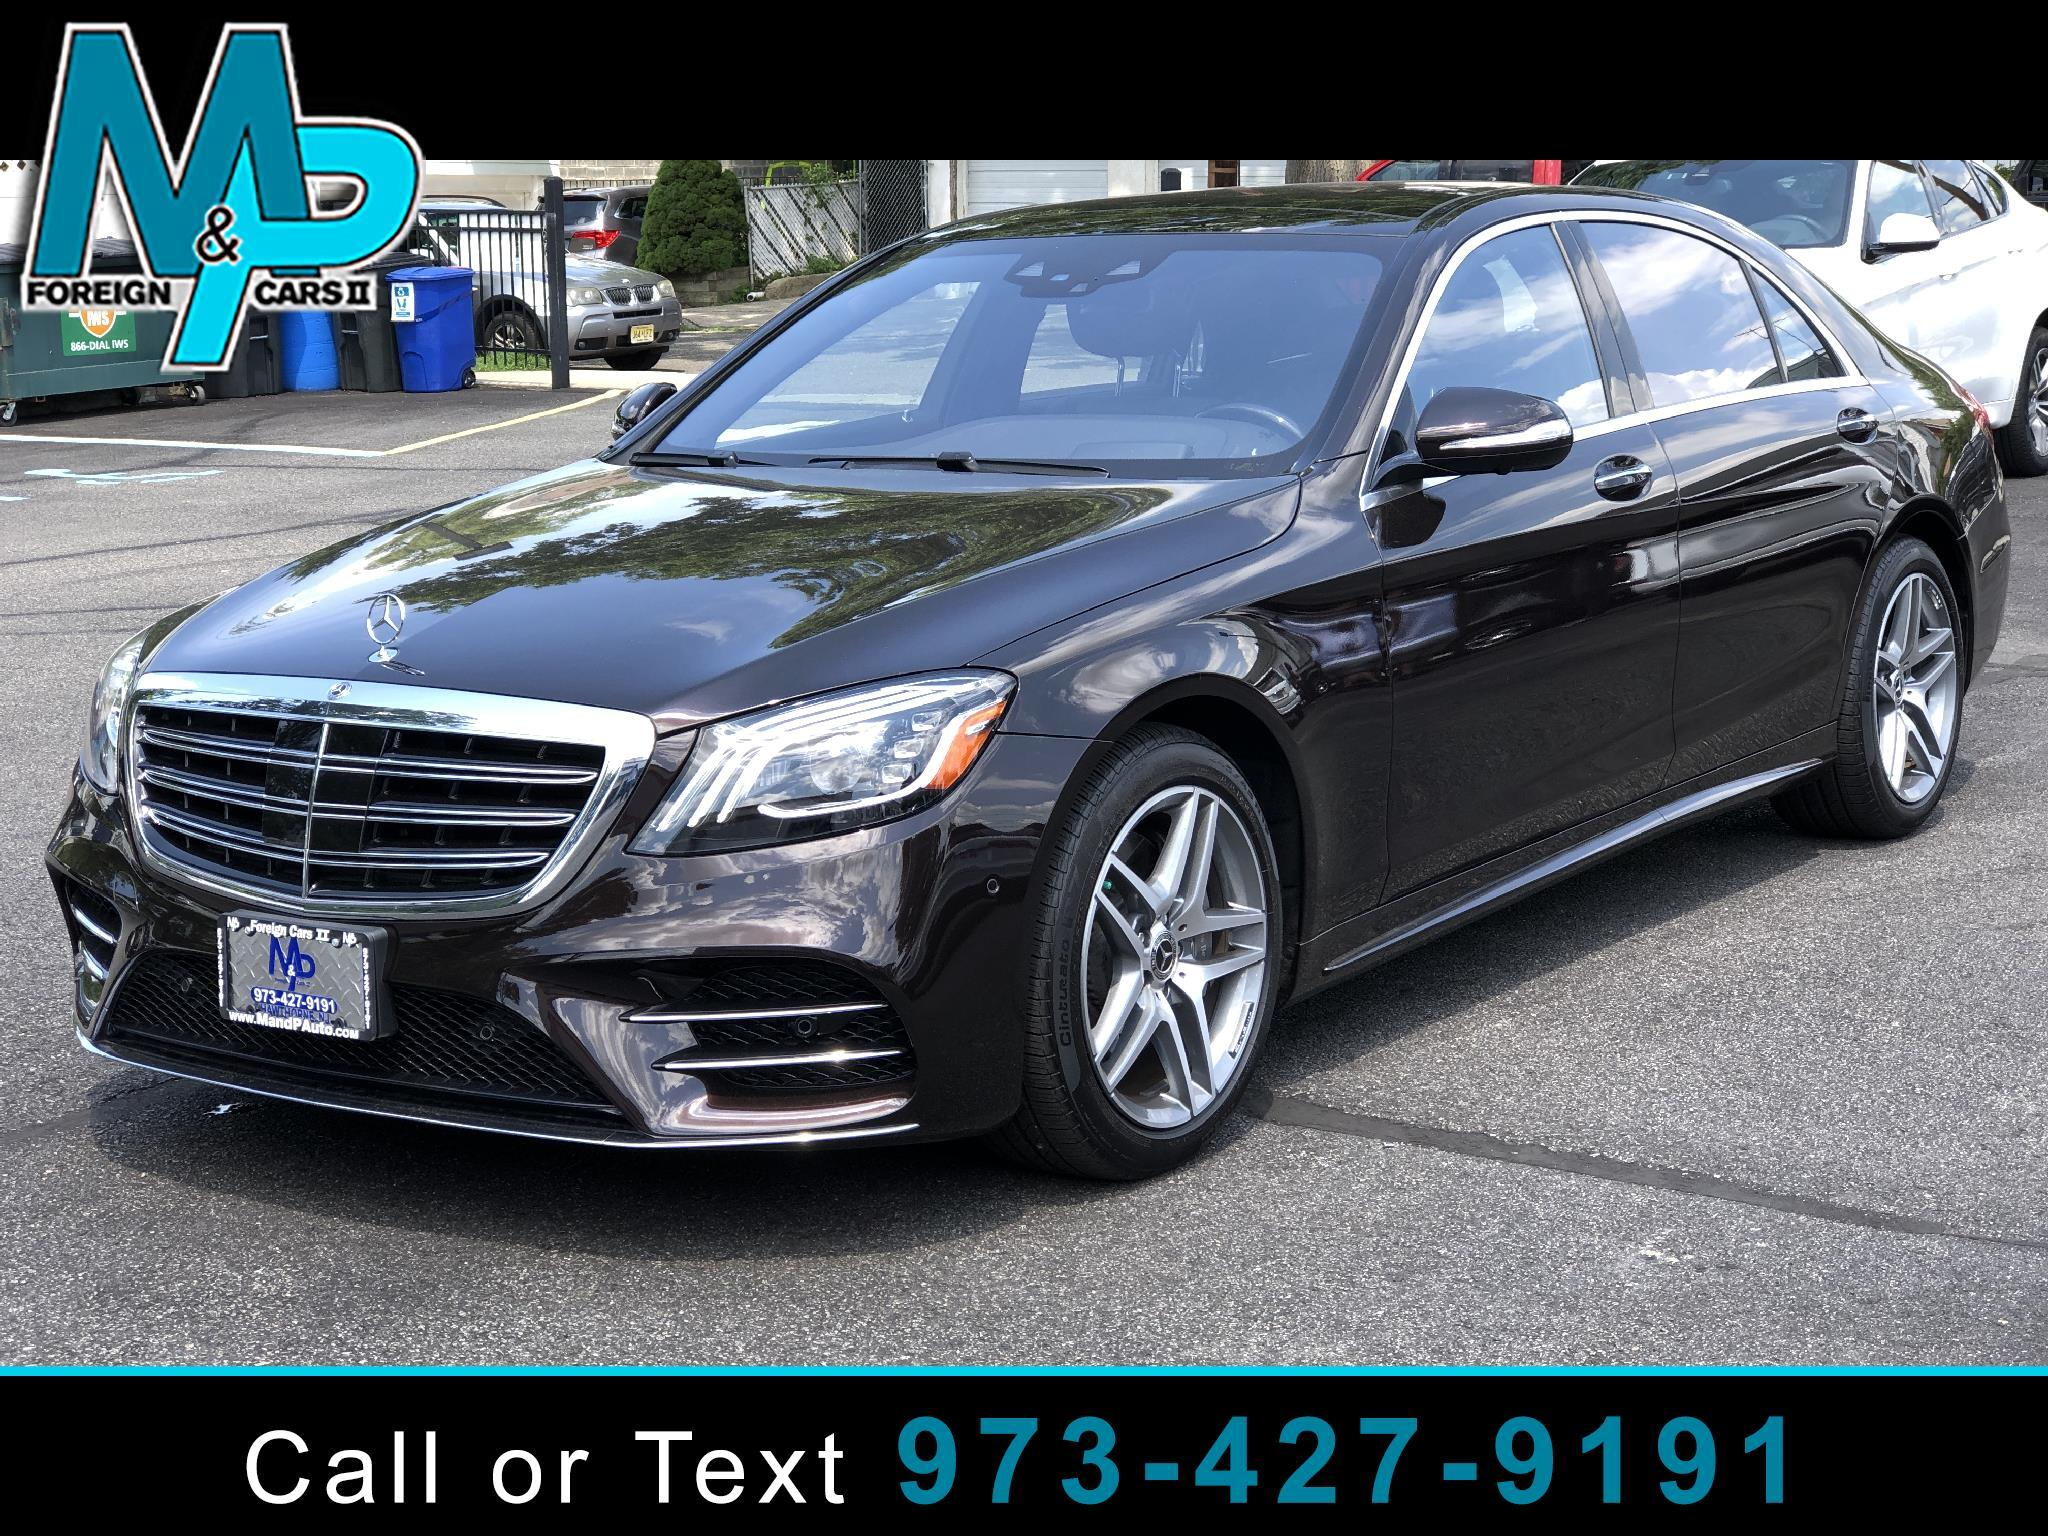 Mercedes-Benz S-Class S 560 4MATIC Sedan 2019